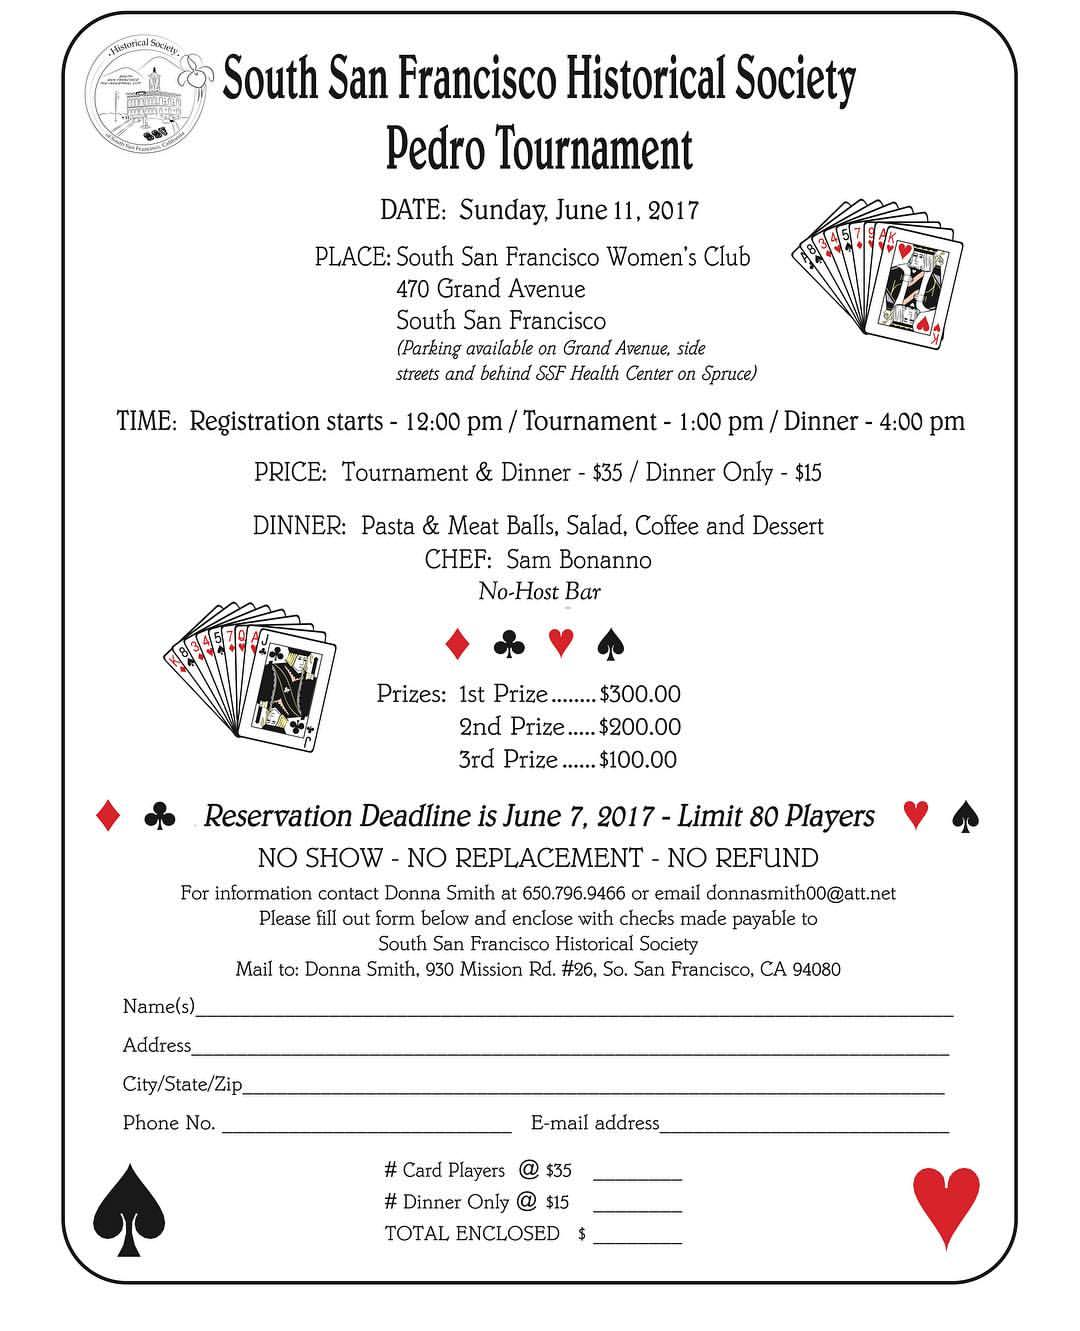 SSF Historical Society Hosts PEDRO Tourney and Spaghetti Dinner Sunday June 11th